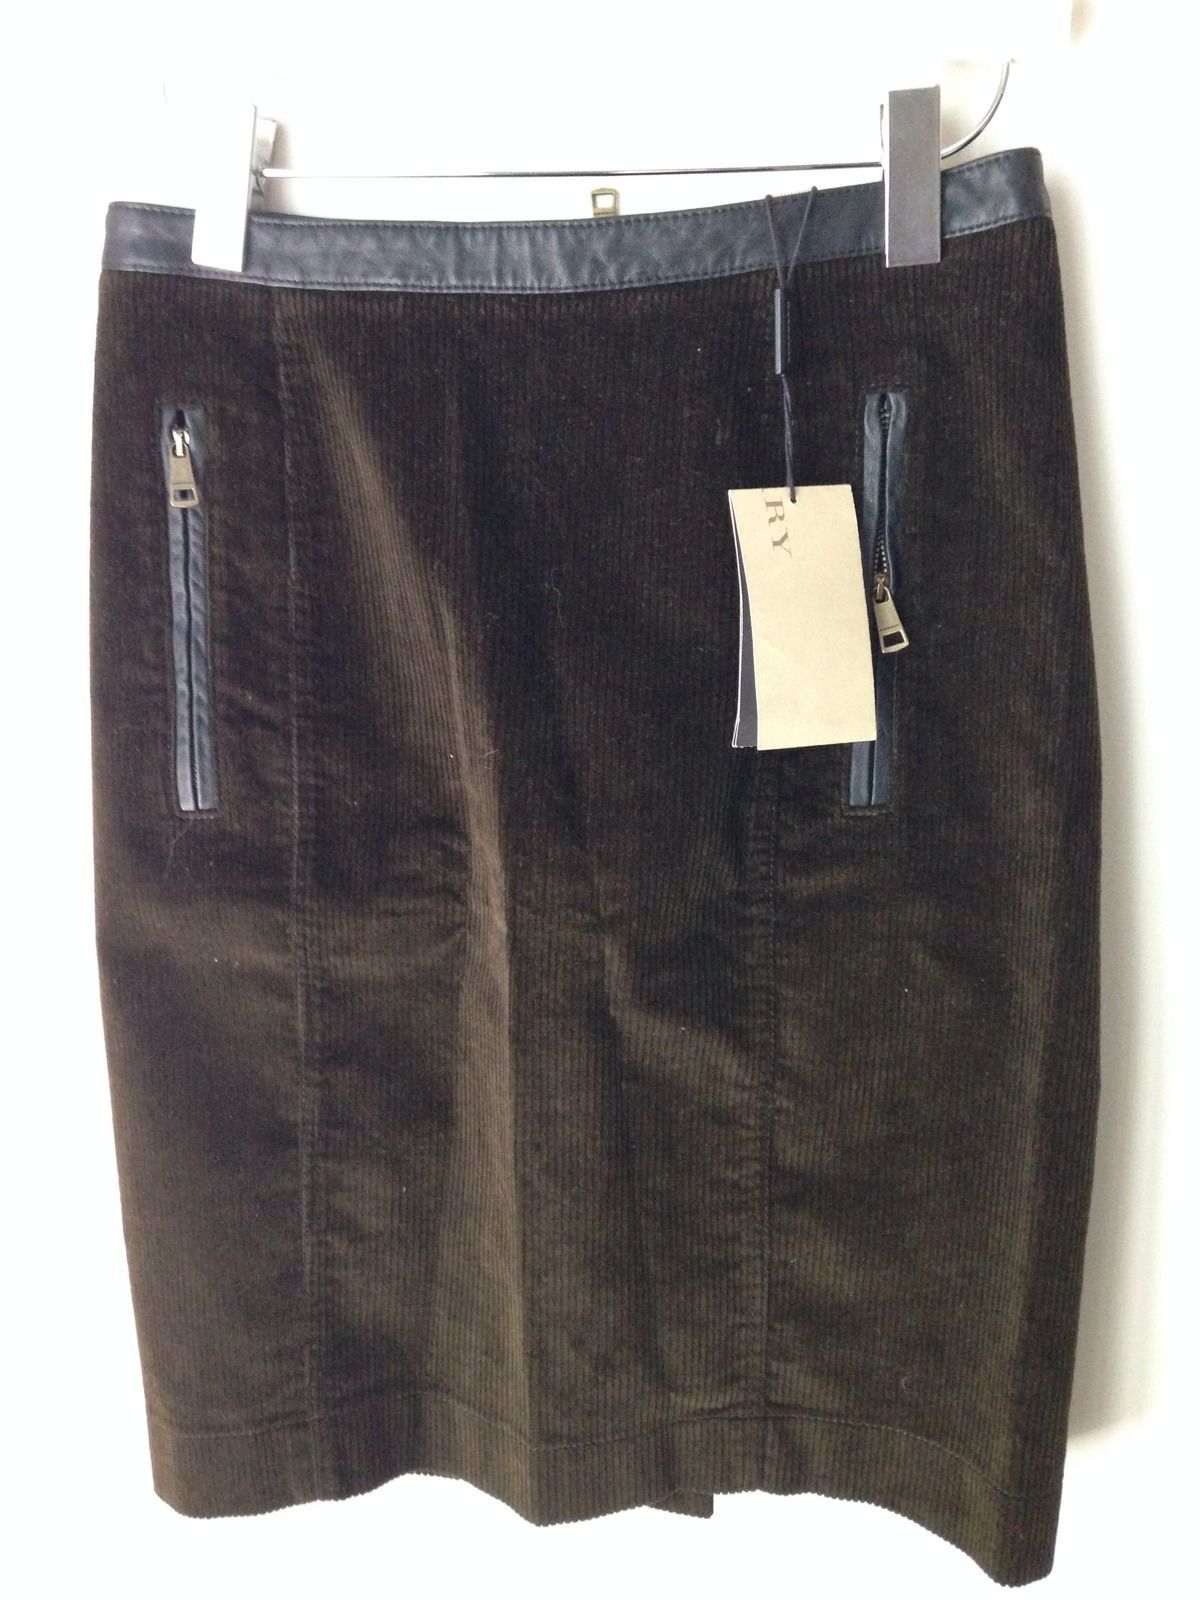 BURBERRY BRIT CORDUROY LEATHER TRIM PENCIL SKIRT - NWT SIZE US8